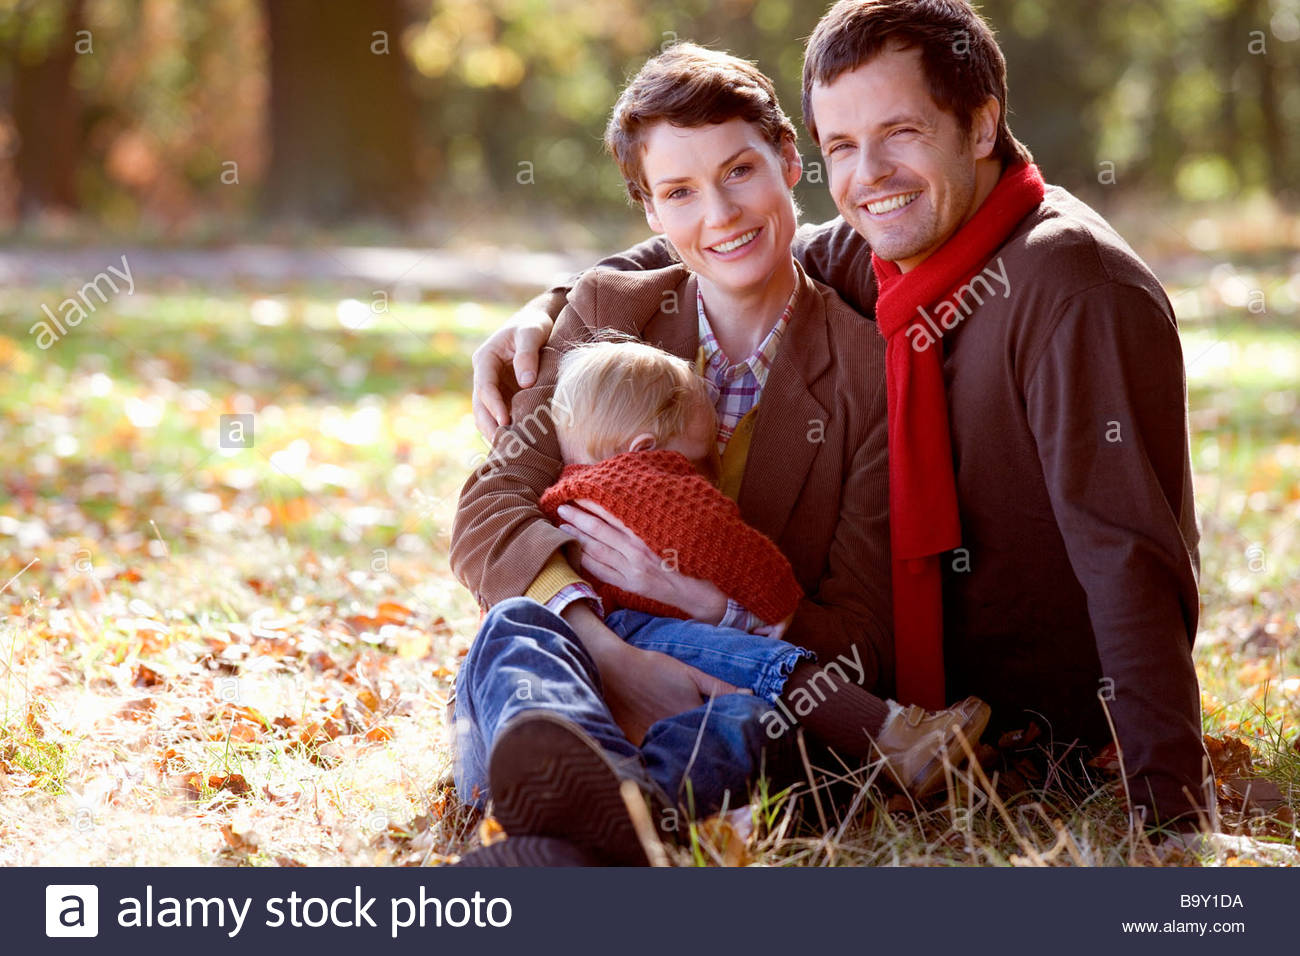 A portrait of a young family sitting on the grass in autumn time - Stock Image